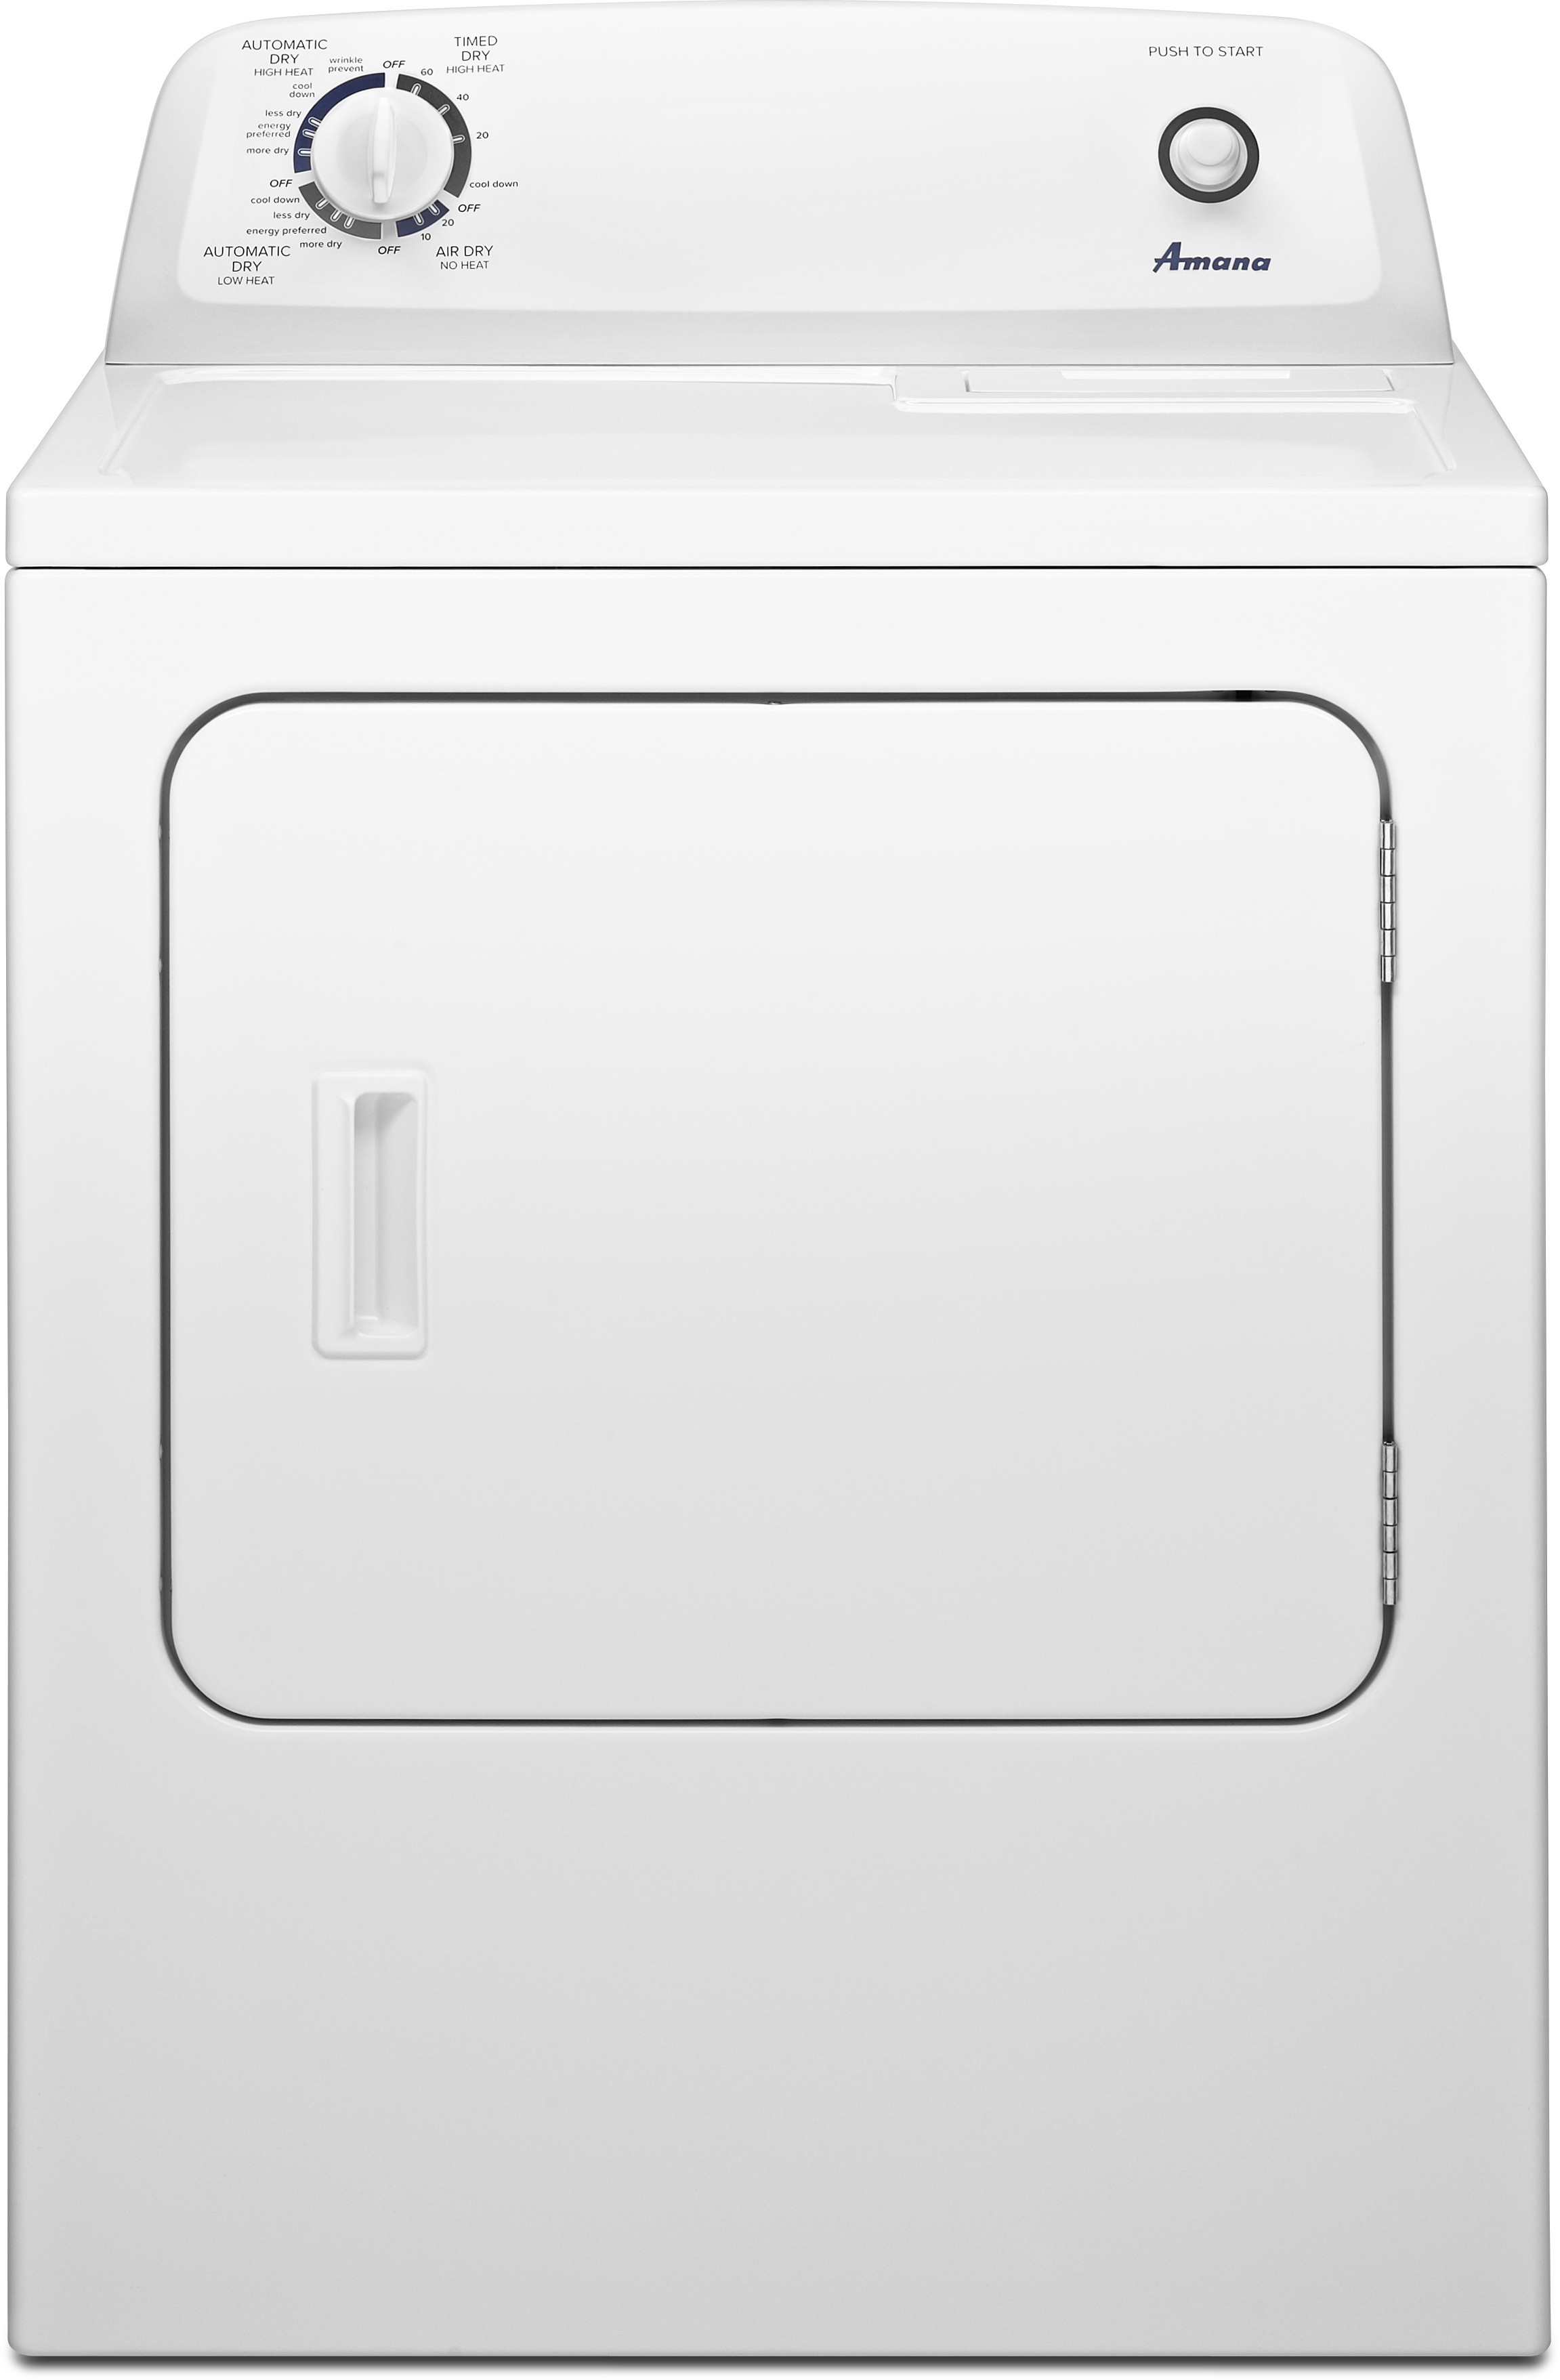 Amana Ngd4655ew 29 Inch 6 5 Cu Ft Gas Dryer With 11 Dry